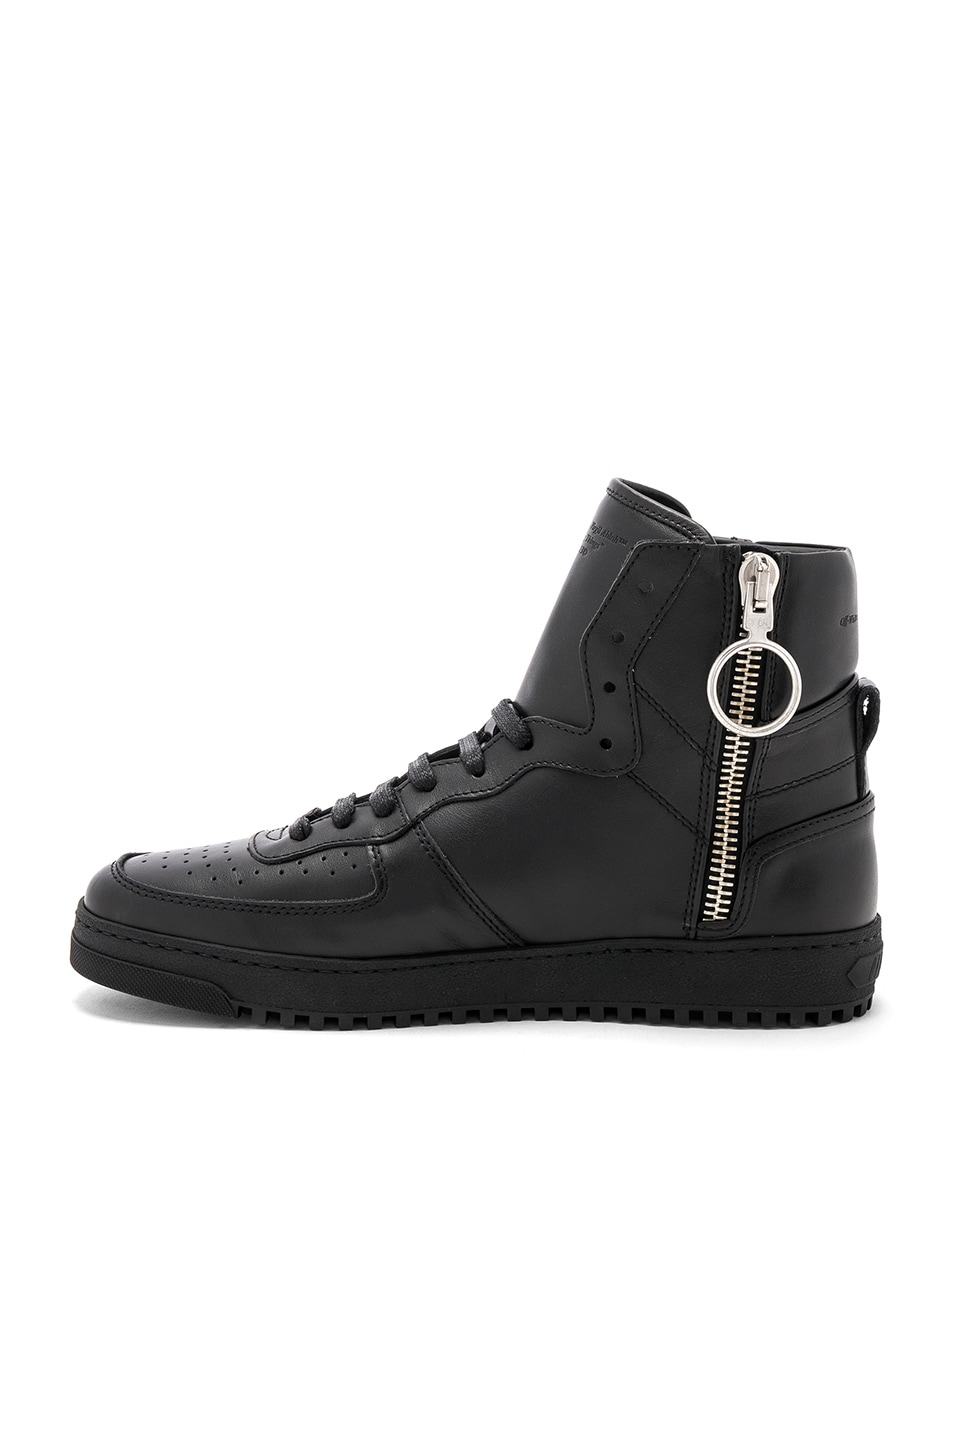 Image 5 of OFF-WHITE 70s High Top Sneakers in Black & White